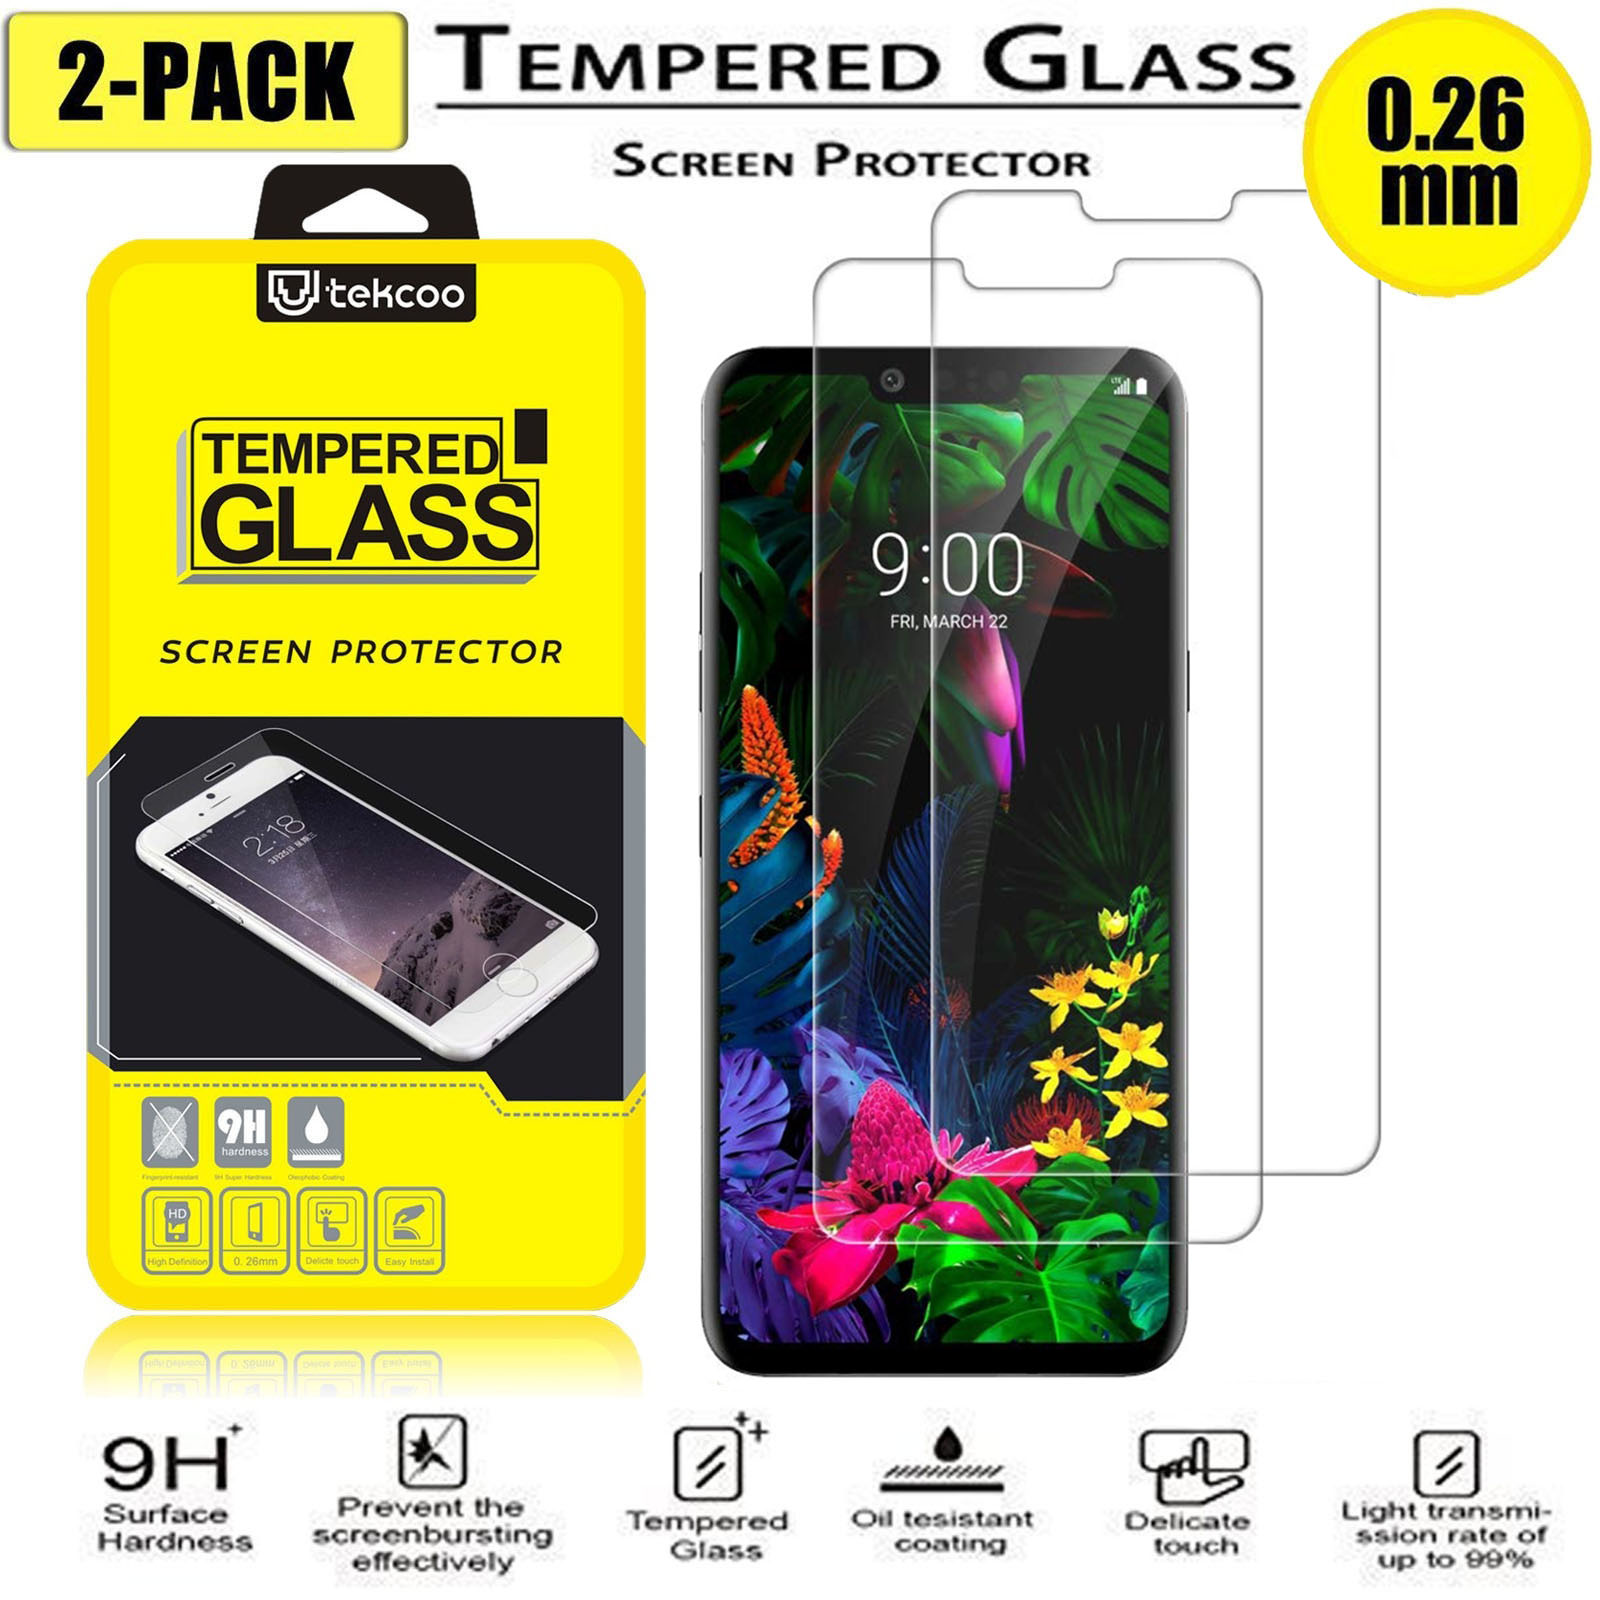 2 Pcs HD Tempered Glass Screen Protector For LG Aristo / Aristo 2 / Stylo 2 / 3 / 4 / K20 Plus /Zone 4 / K40 / K30 / G8 / 7 / 6